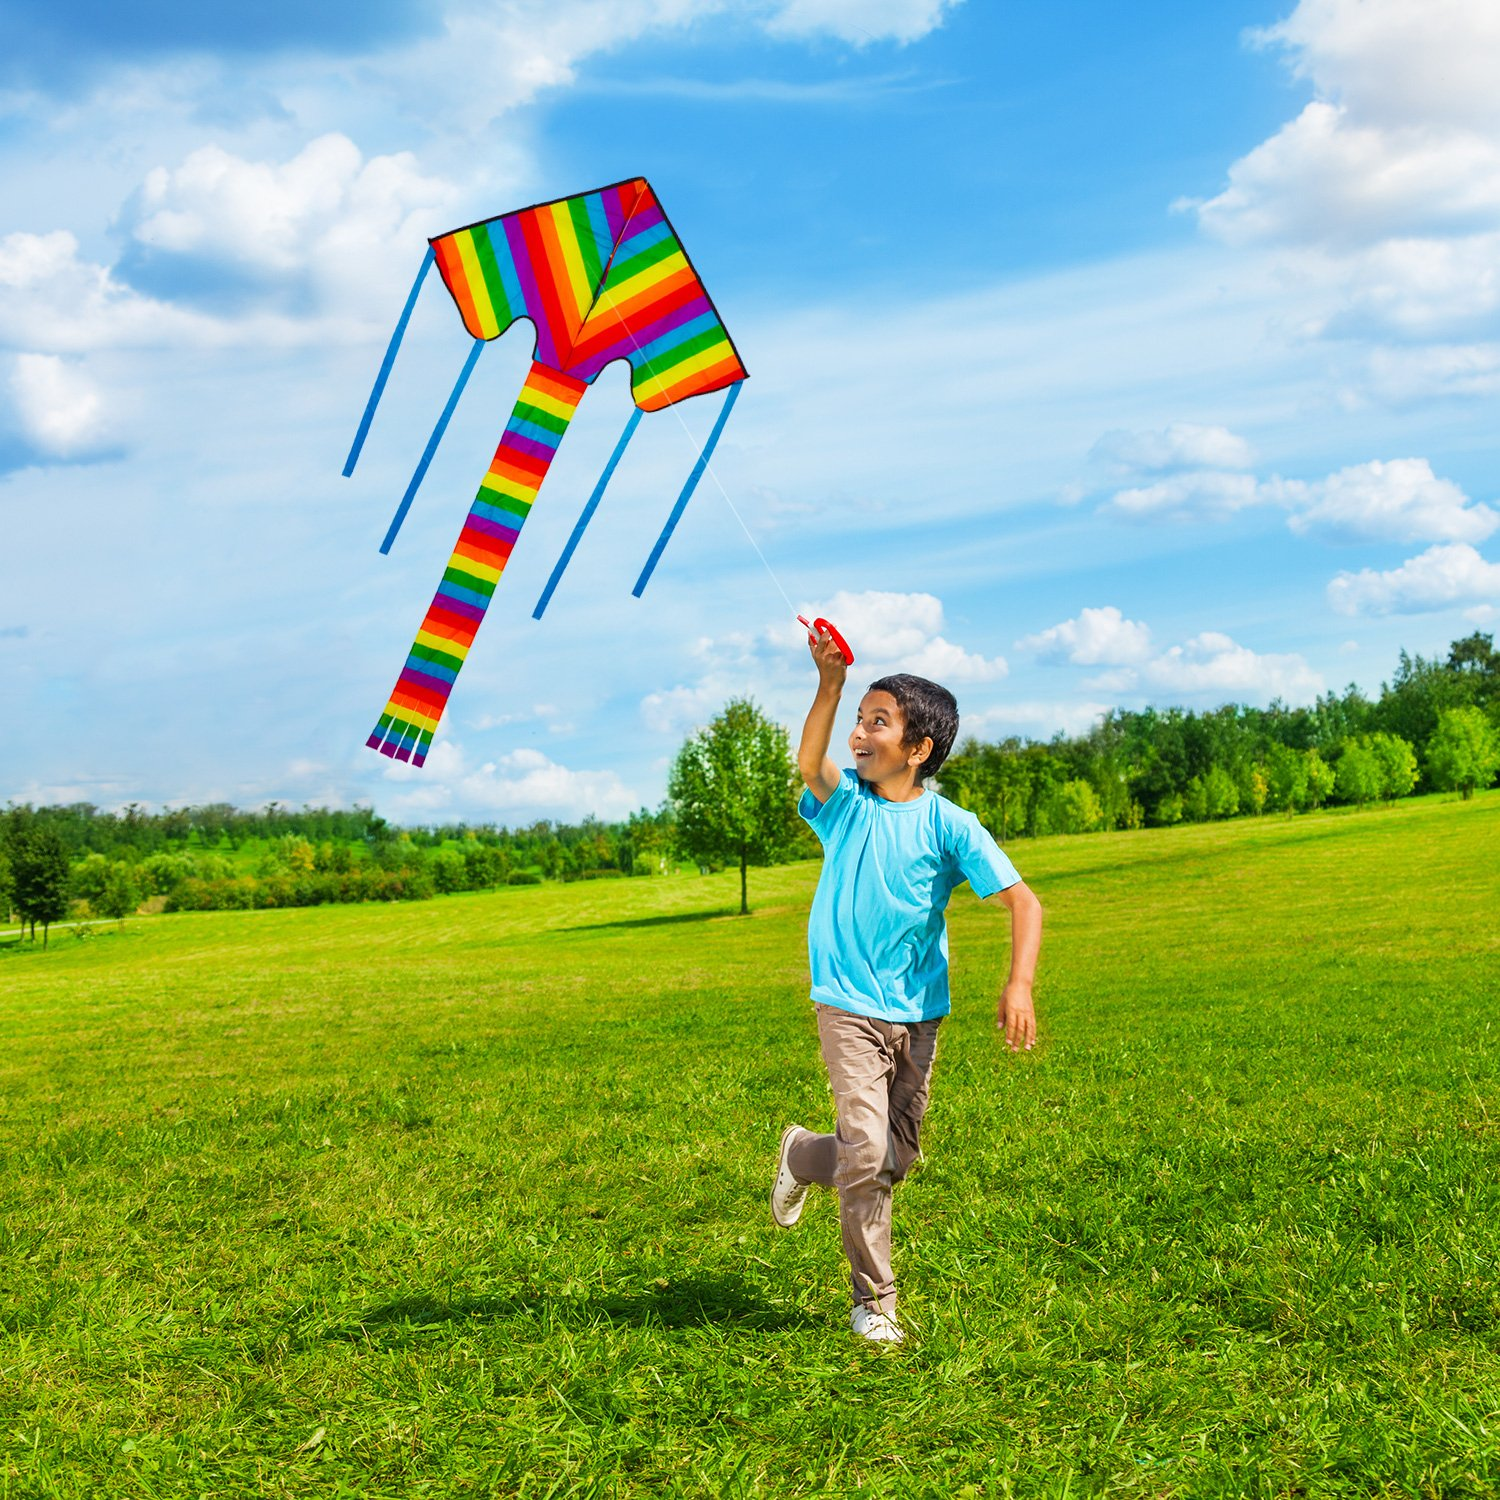 Beautiful Rainbow Kite For Kids And Adults (Large) - Bright Colours That Really POP! Very Easy To Fly - Suitable For Beginners, Boys, Girls, Children and Adults. Outdoor Games Activities and Summer Fun. Comes With Lifetime Warranty and Mone